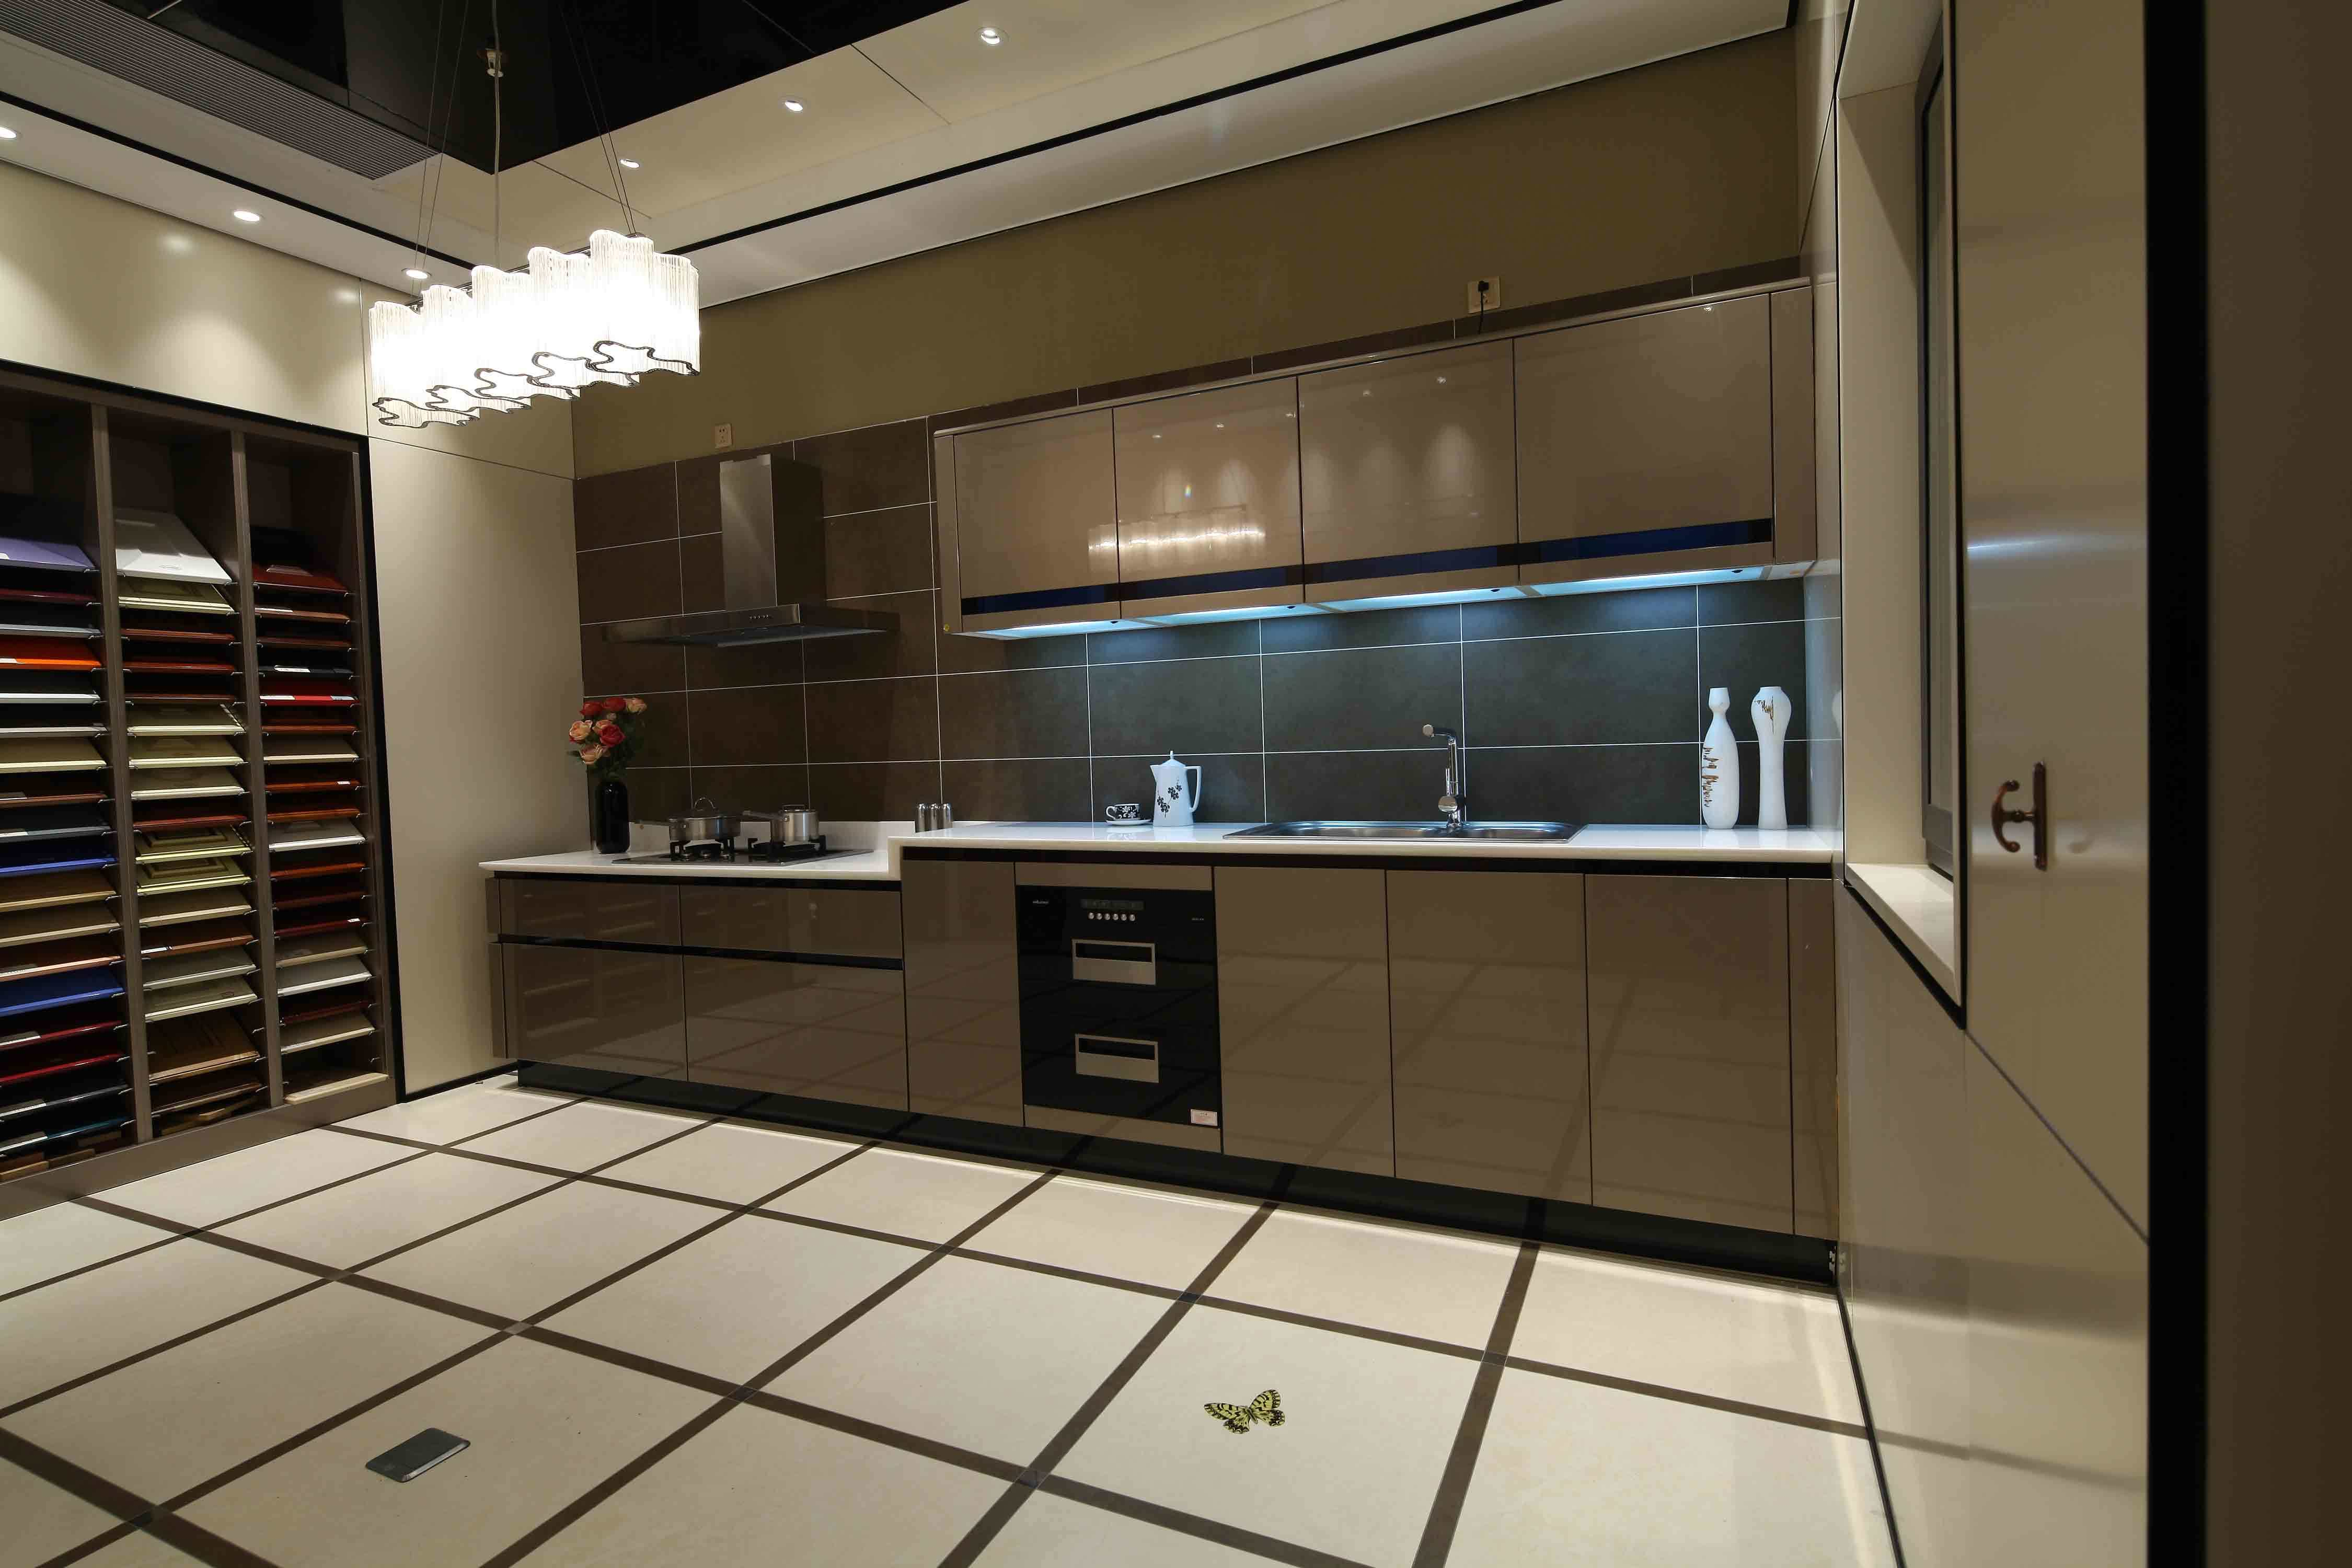 Our metricon nolan 41 journey kitchen and vanity cabinetry - Polyurethane Kitchen Cabinets